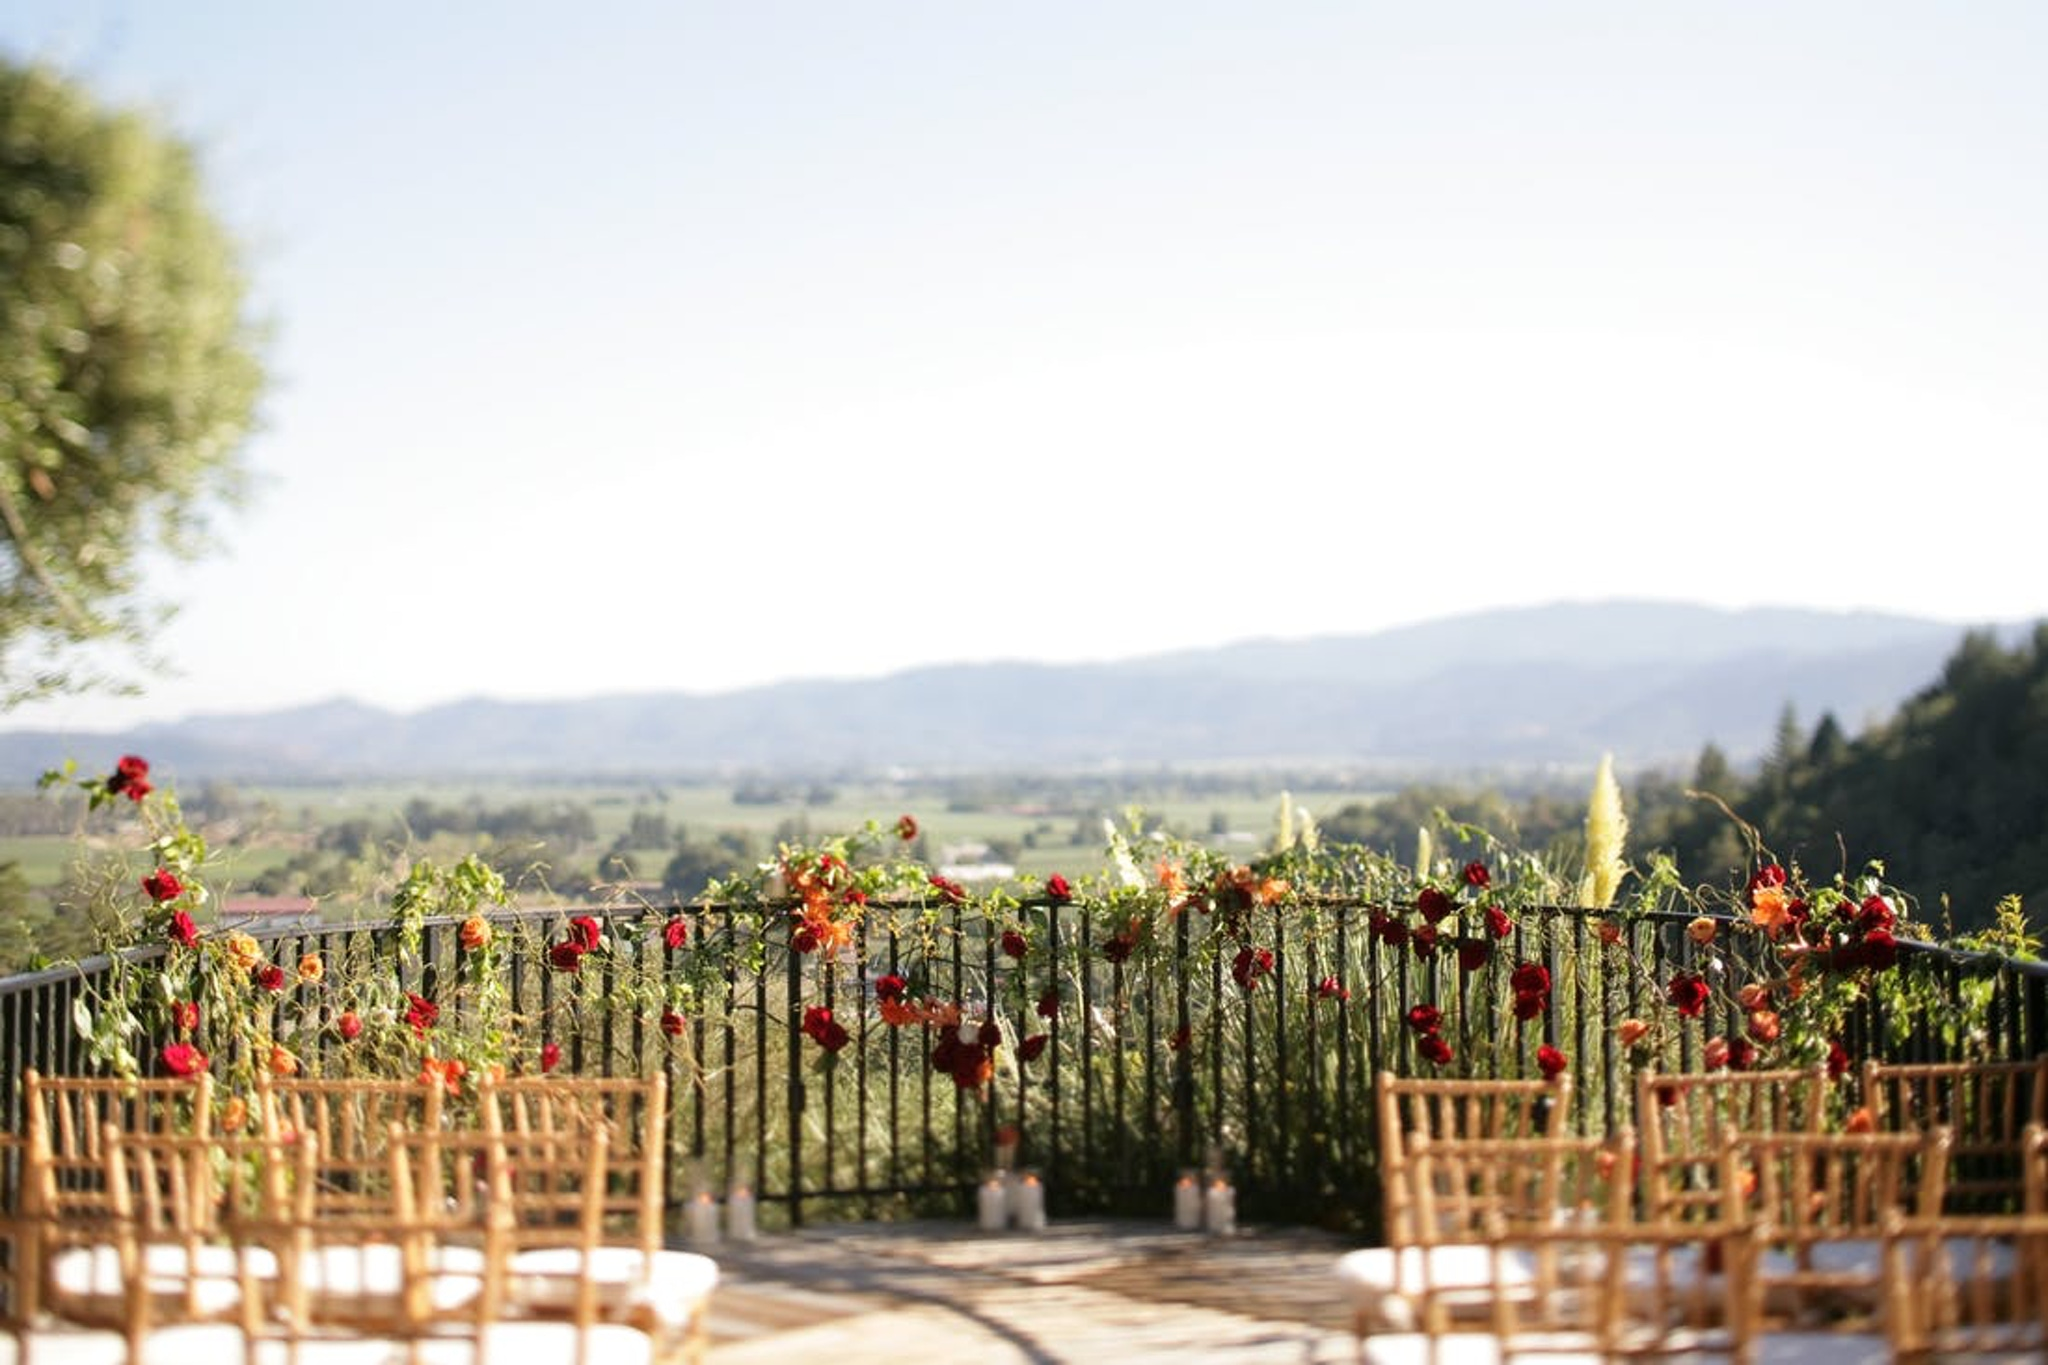 outdoor wedding ceremony in Napa at Auberge du Soleil with red and orange flowers inspired by fall